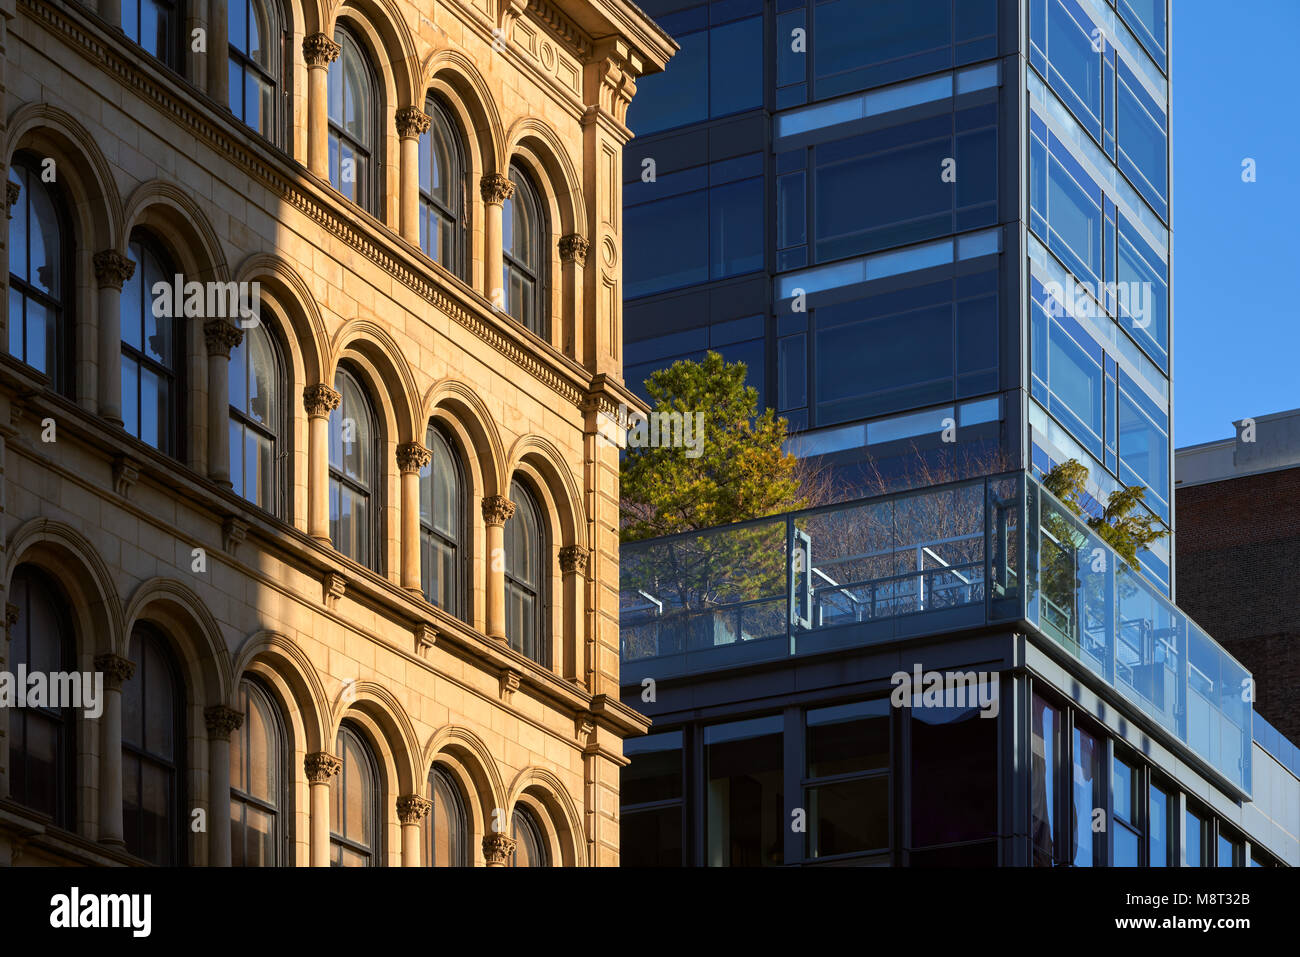 Soho building facades with contrasting architectural styles. New York City, Manhattan, Soho - Stock Image